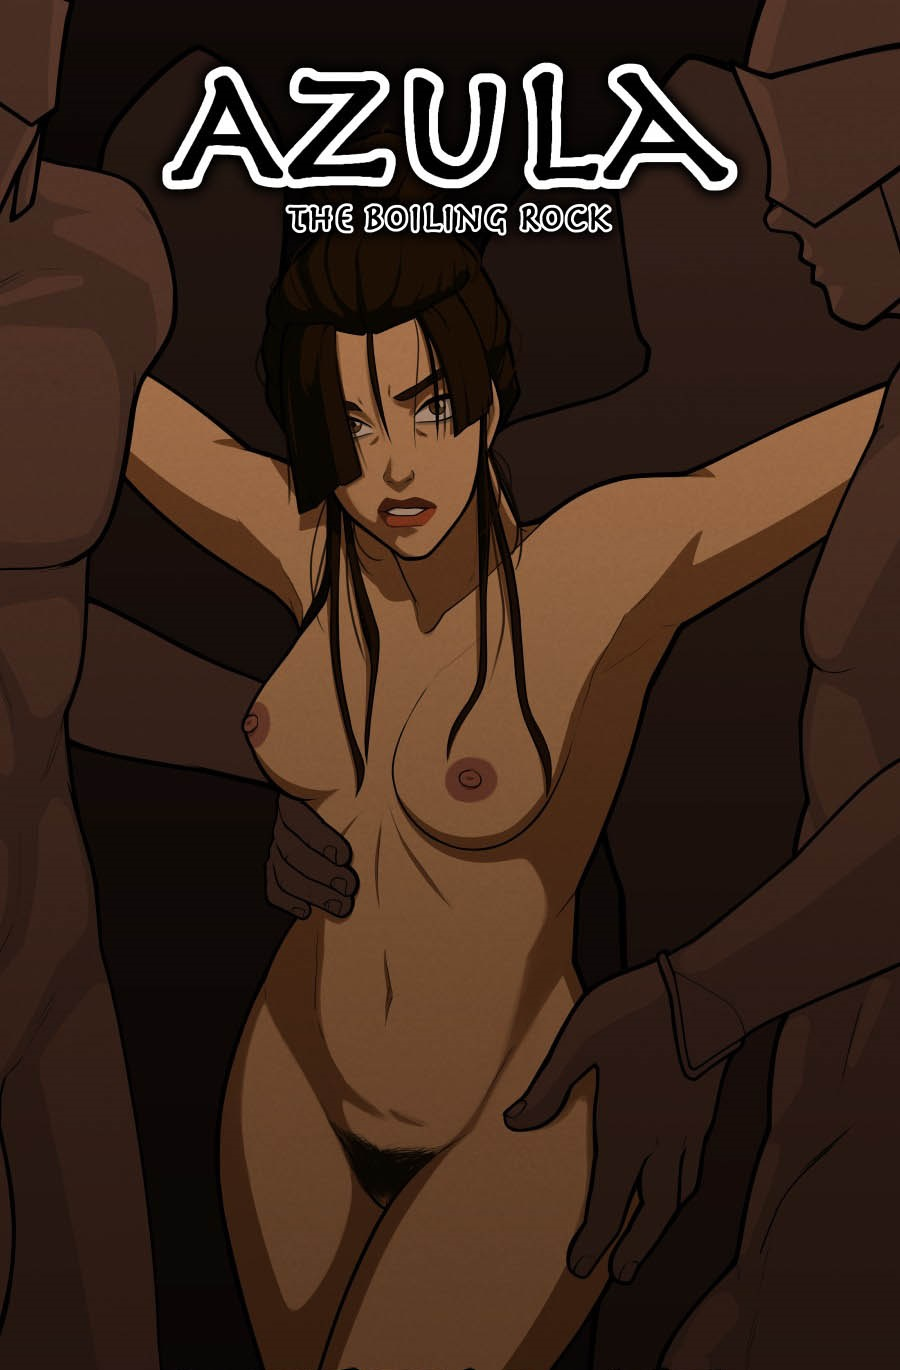 HQ de sexo anal: Azula – The Boiling Rock